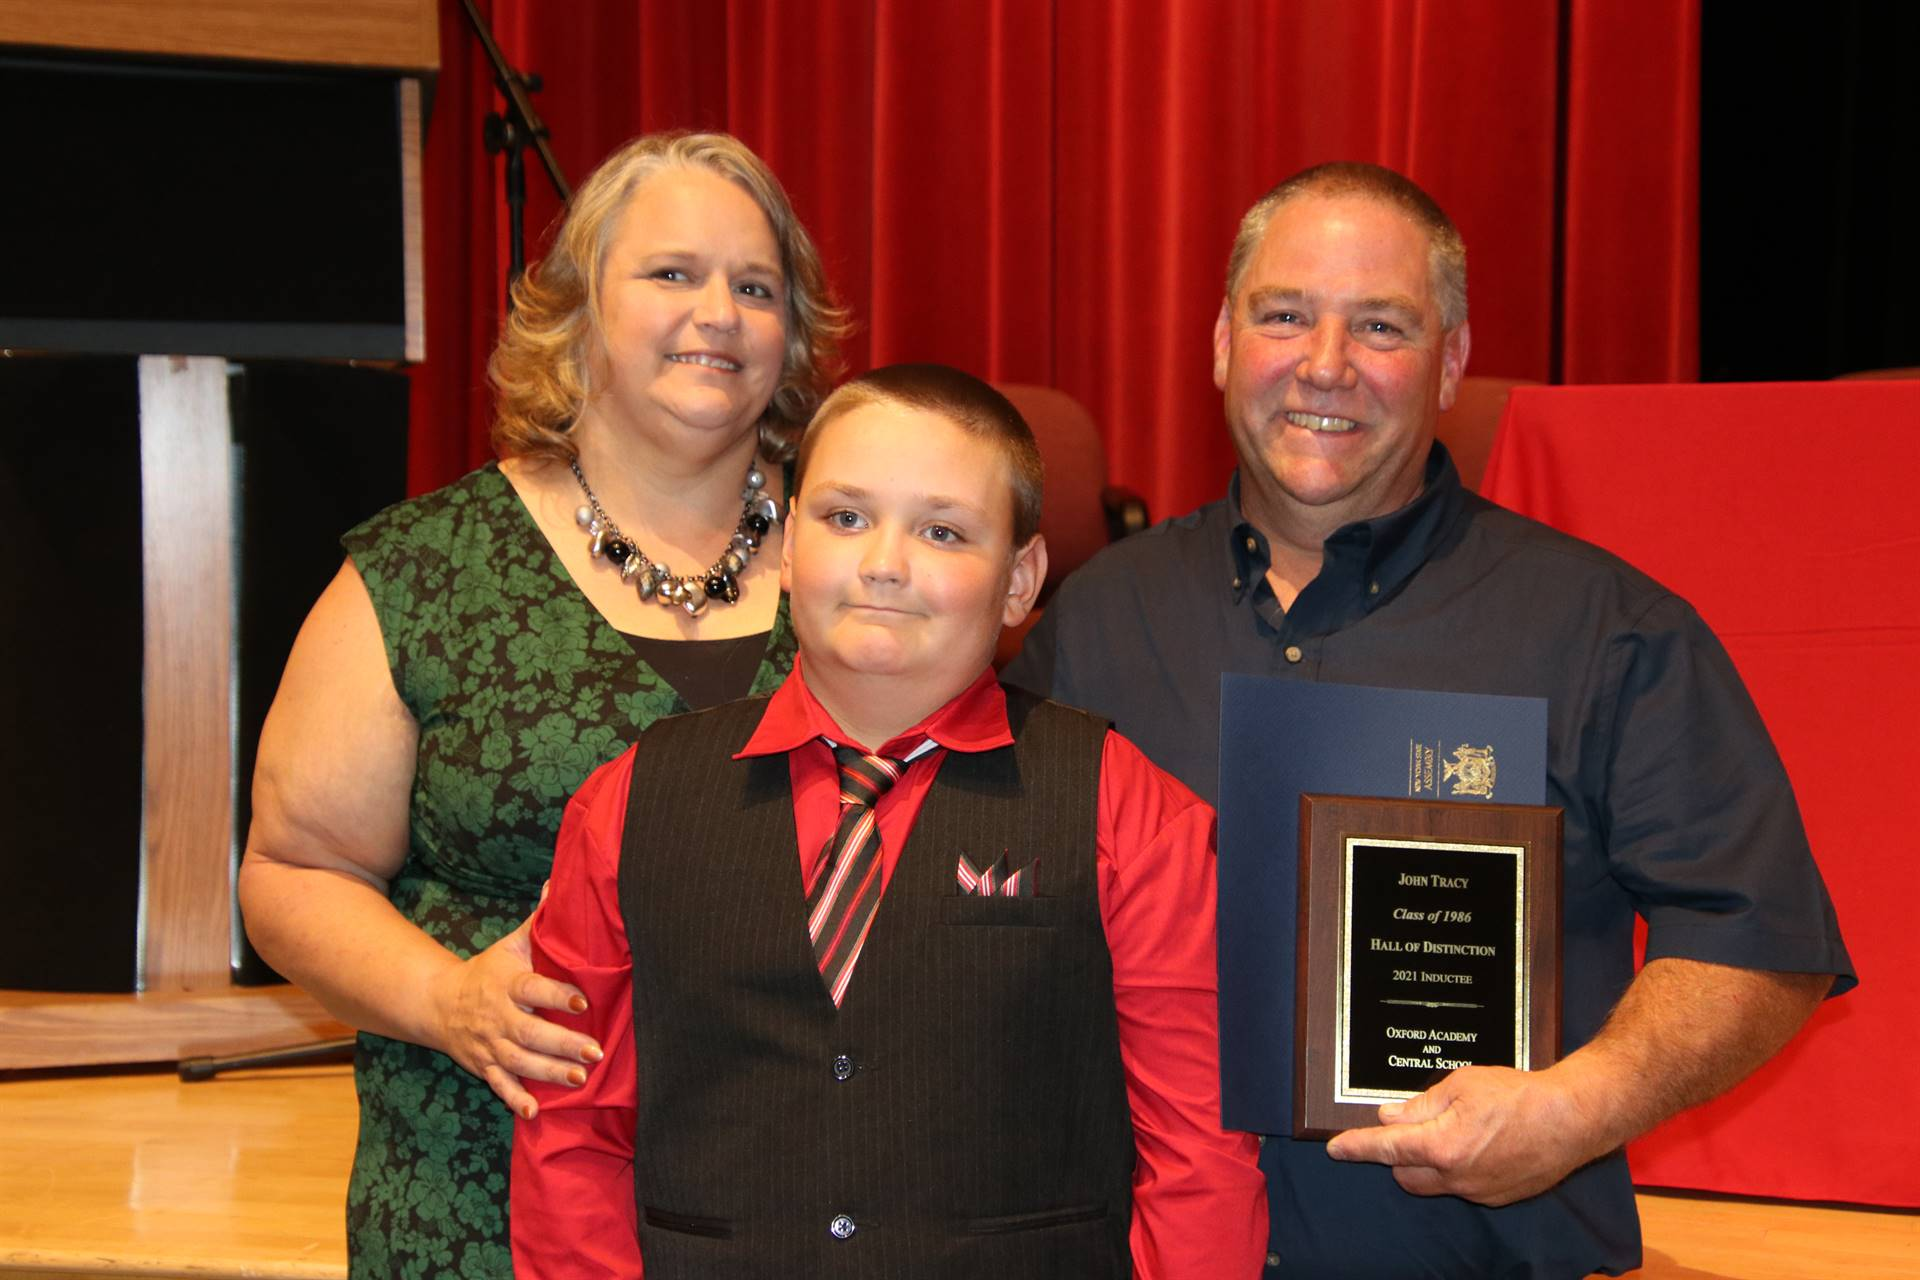 Hall of Distinction honoree Tracy with family